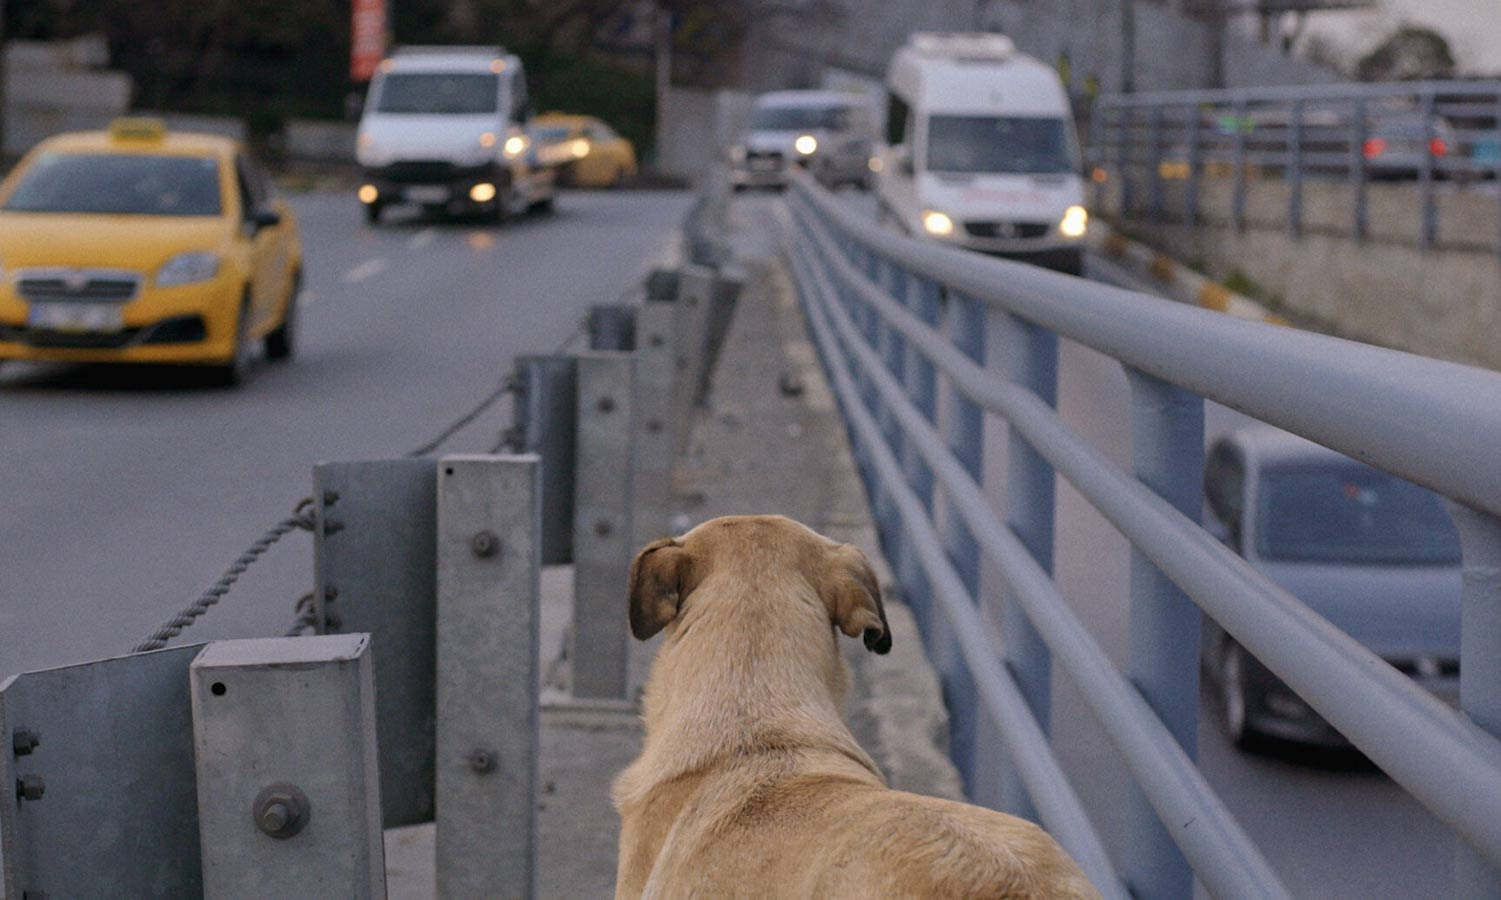 From Elizabeth Lo's 'Stray.' Courtesy of Magnolia Pictures. Zaylin, one of the dogs featured in Elizabeth Lo's 'Stray,' sits in the meridian of an Istanbul boulevard watching the cars pass by.